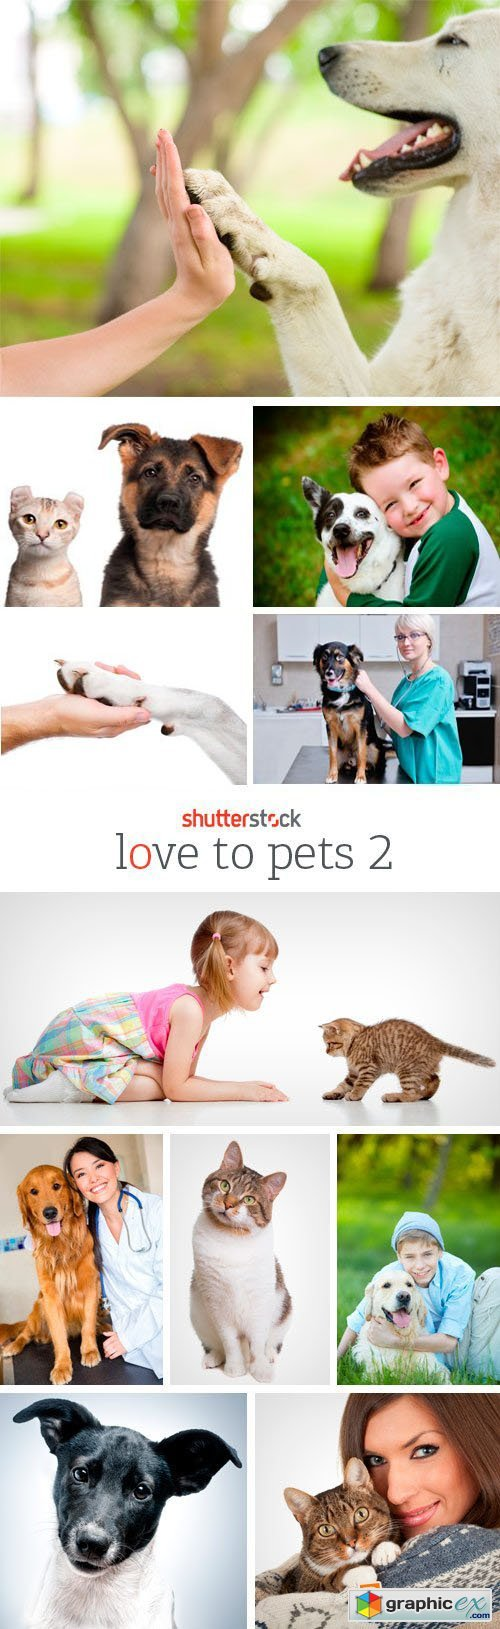 Amazing SS - Love To Pets 2, 25xJPG